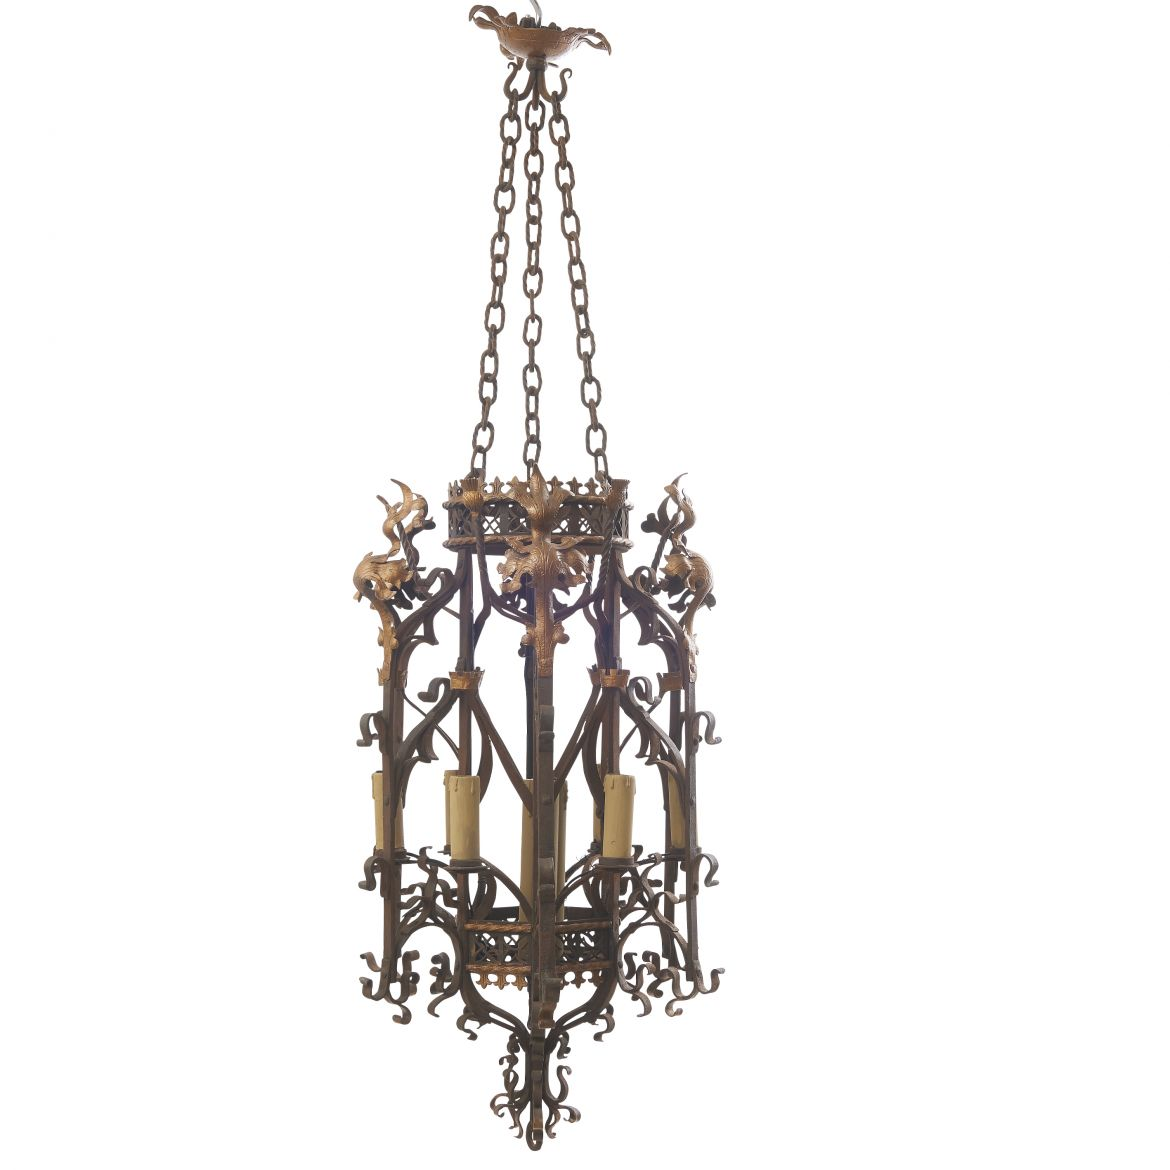 French Wrought Iron Gothic Revivalist Style Lantern